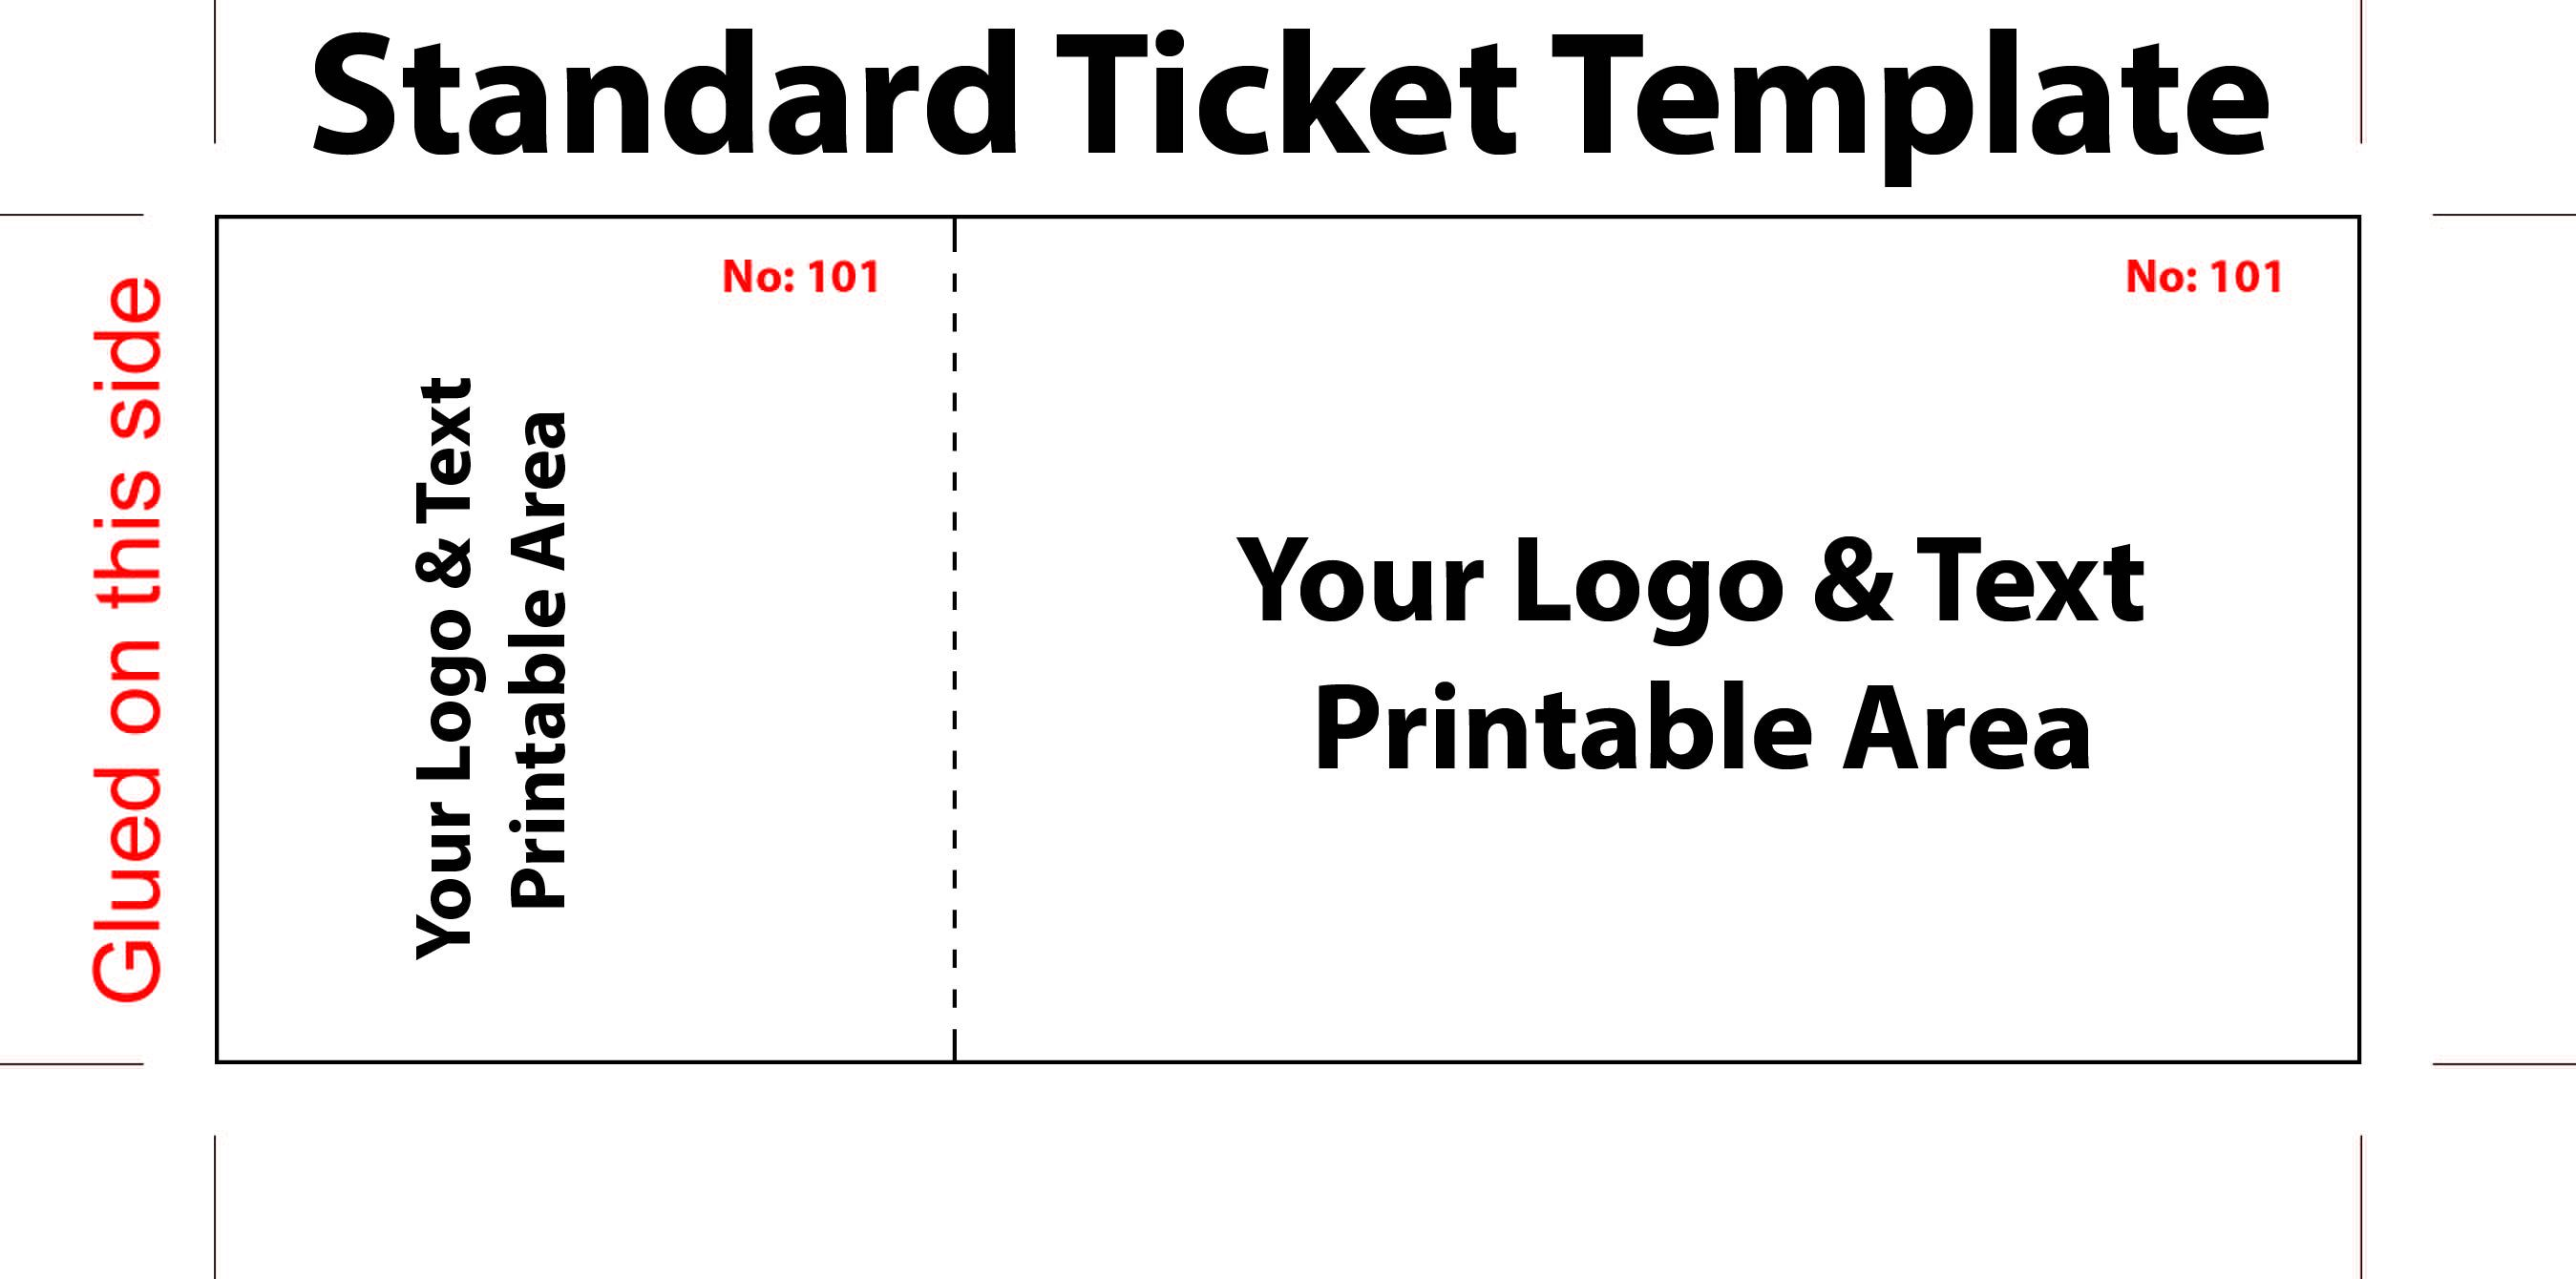 000 Shocking Print Ticket Free Template Image  Your OwnFull